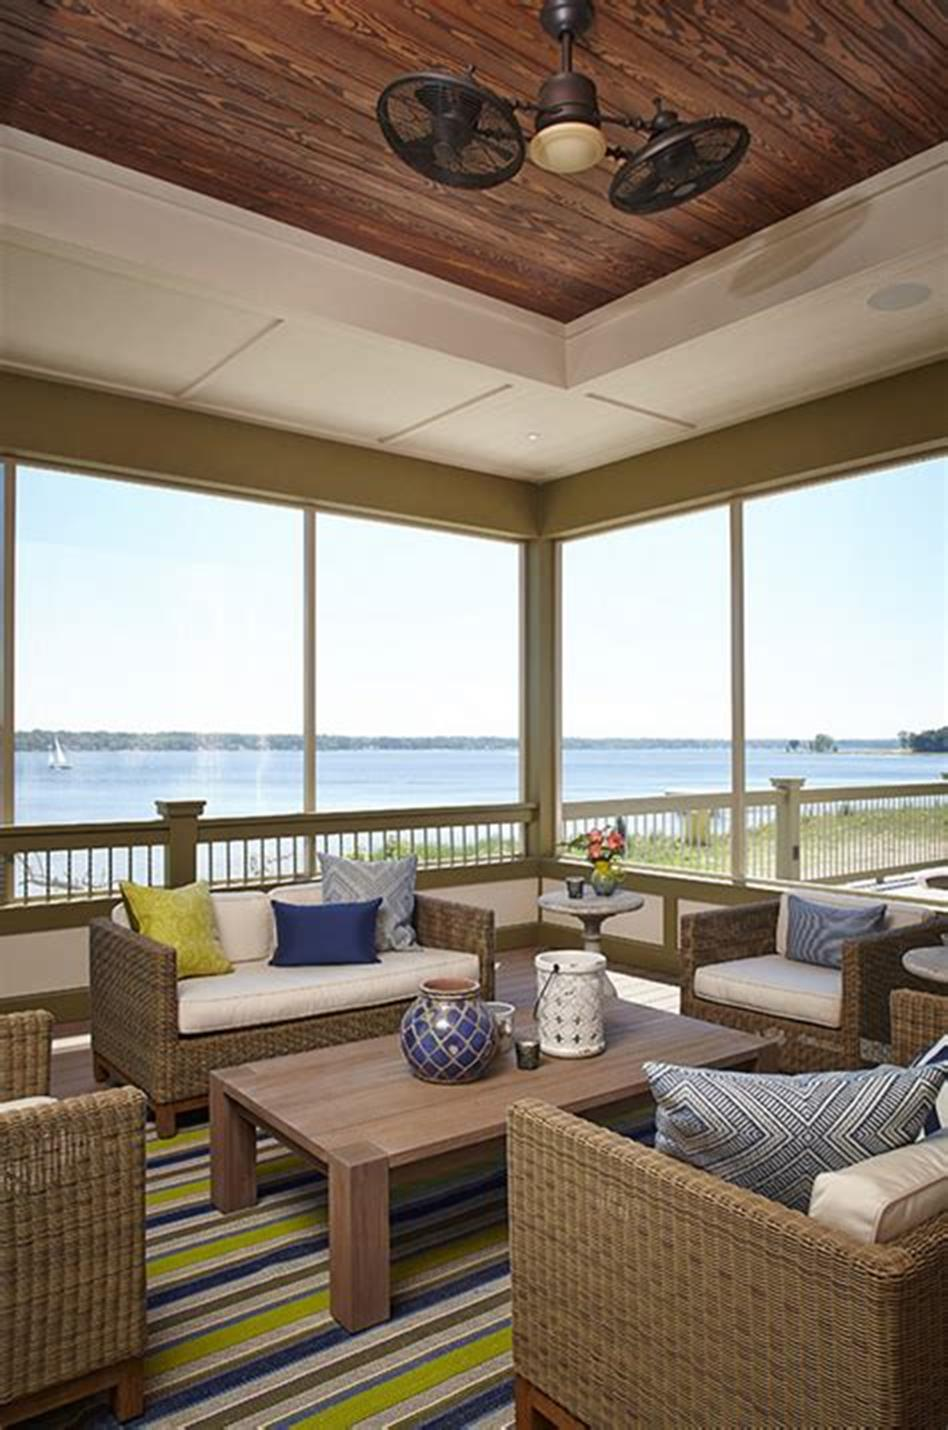 40 Best Screened Porch Design and Decorating Ideas On Budget 7